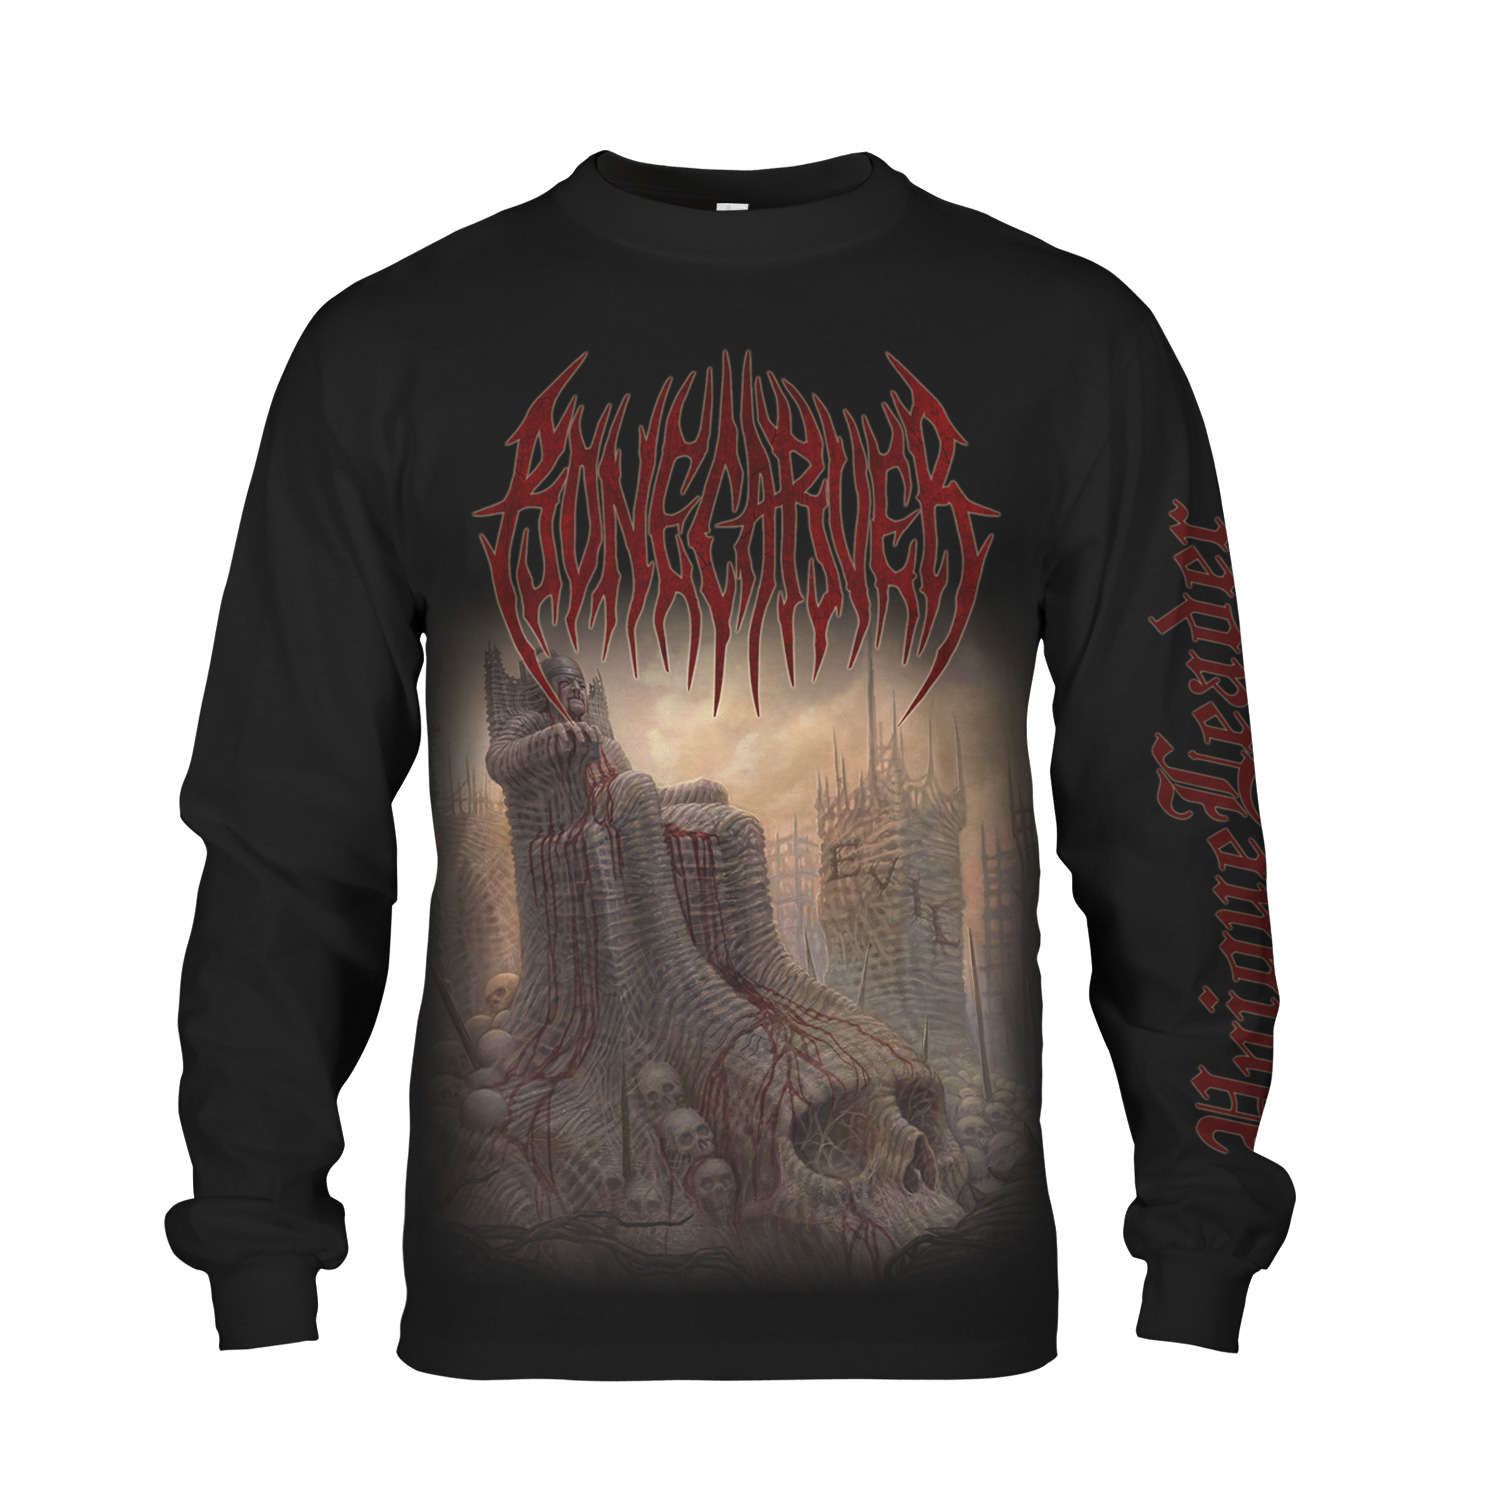 Evil CD + Longsleeve Bundle